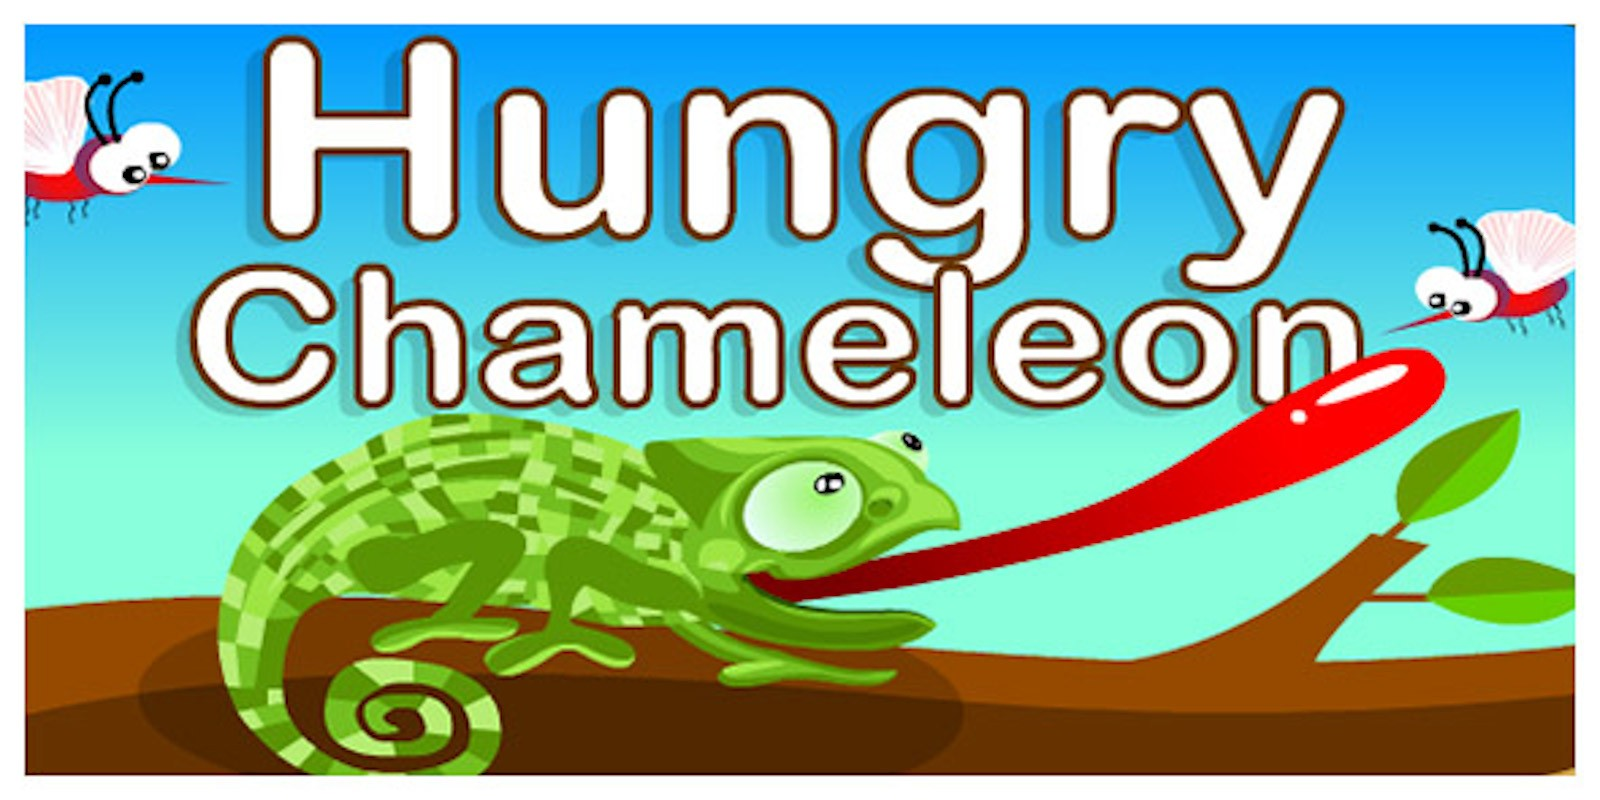 Hungry Chameleon - Unity Project